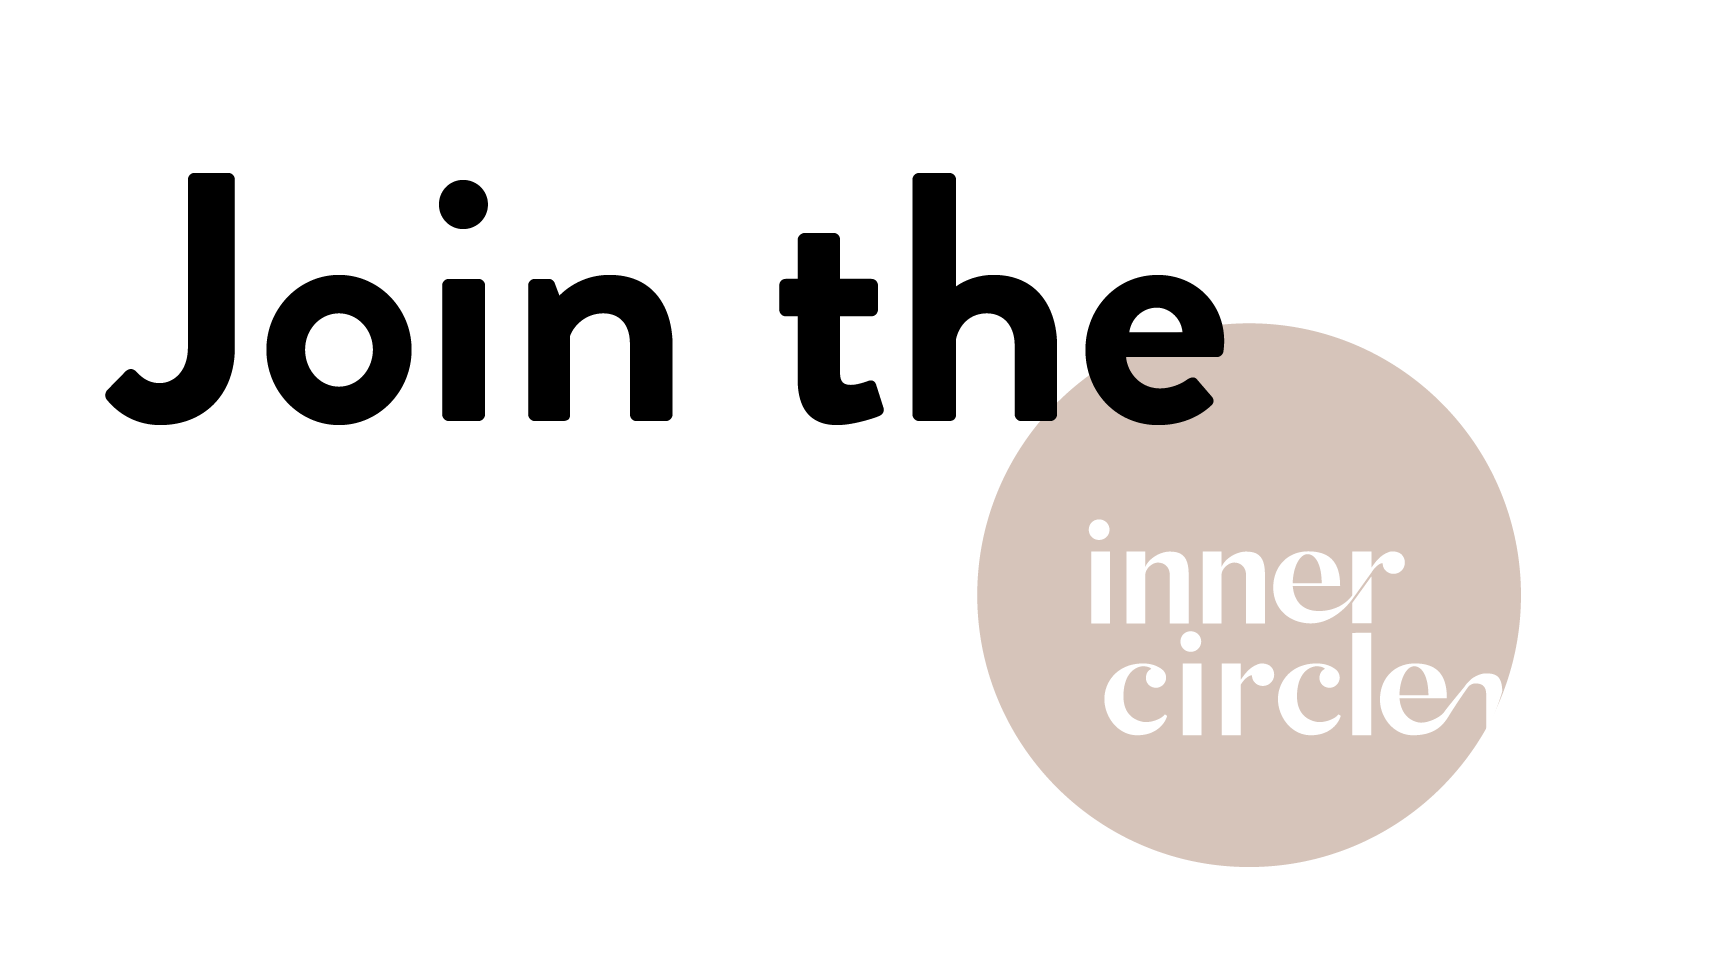 Innercircle-04.png